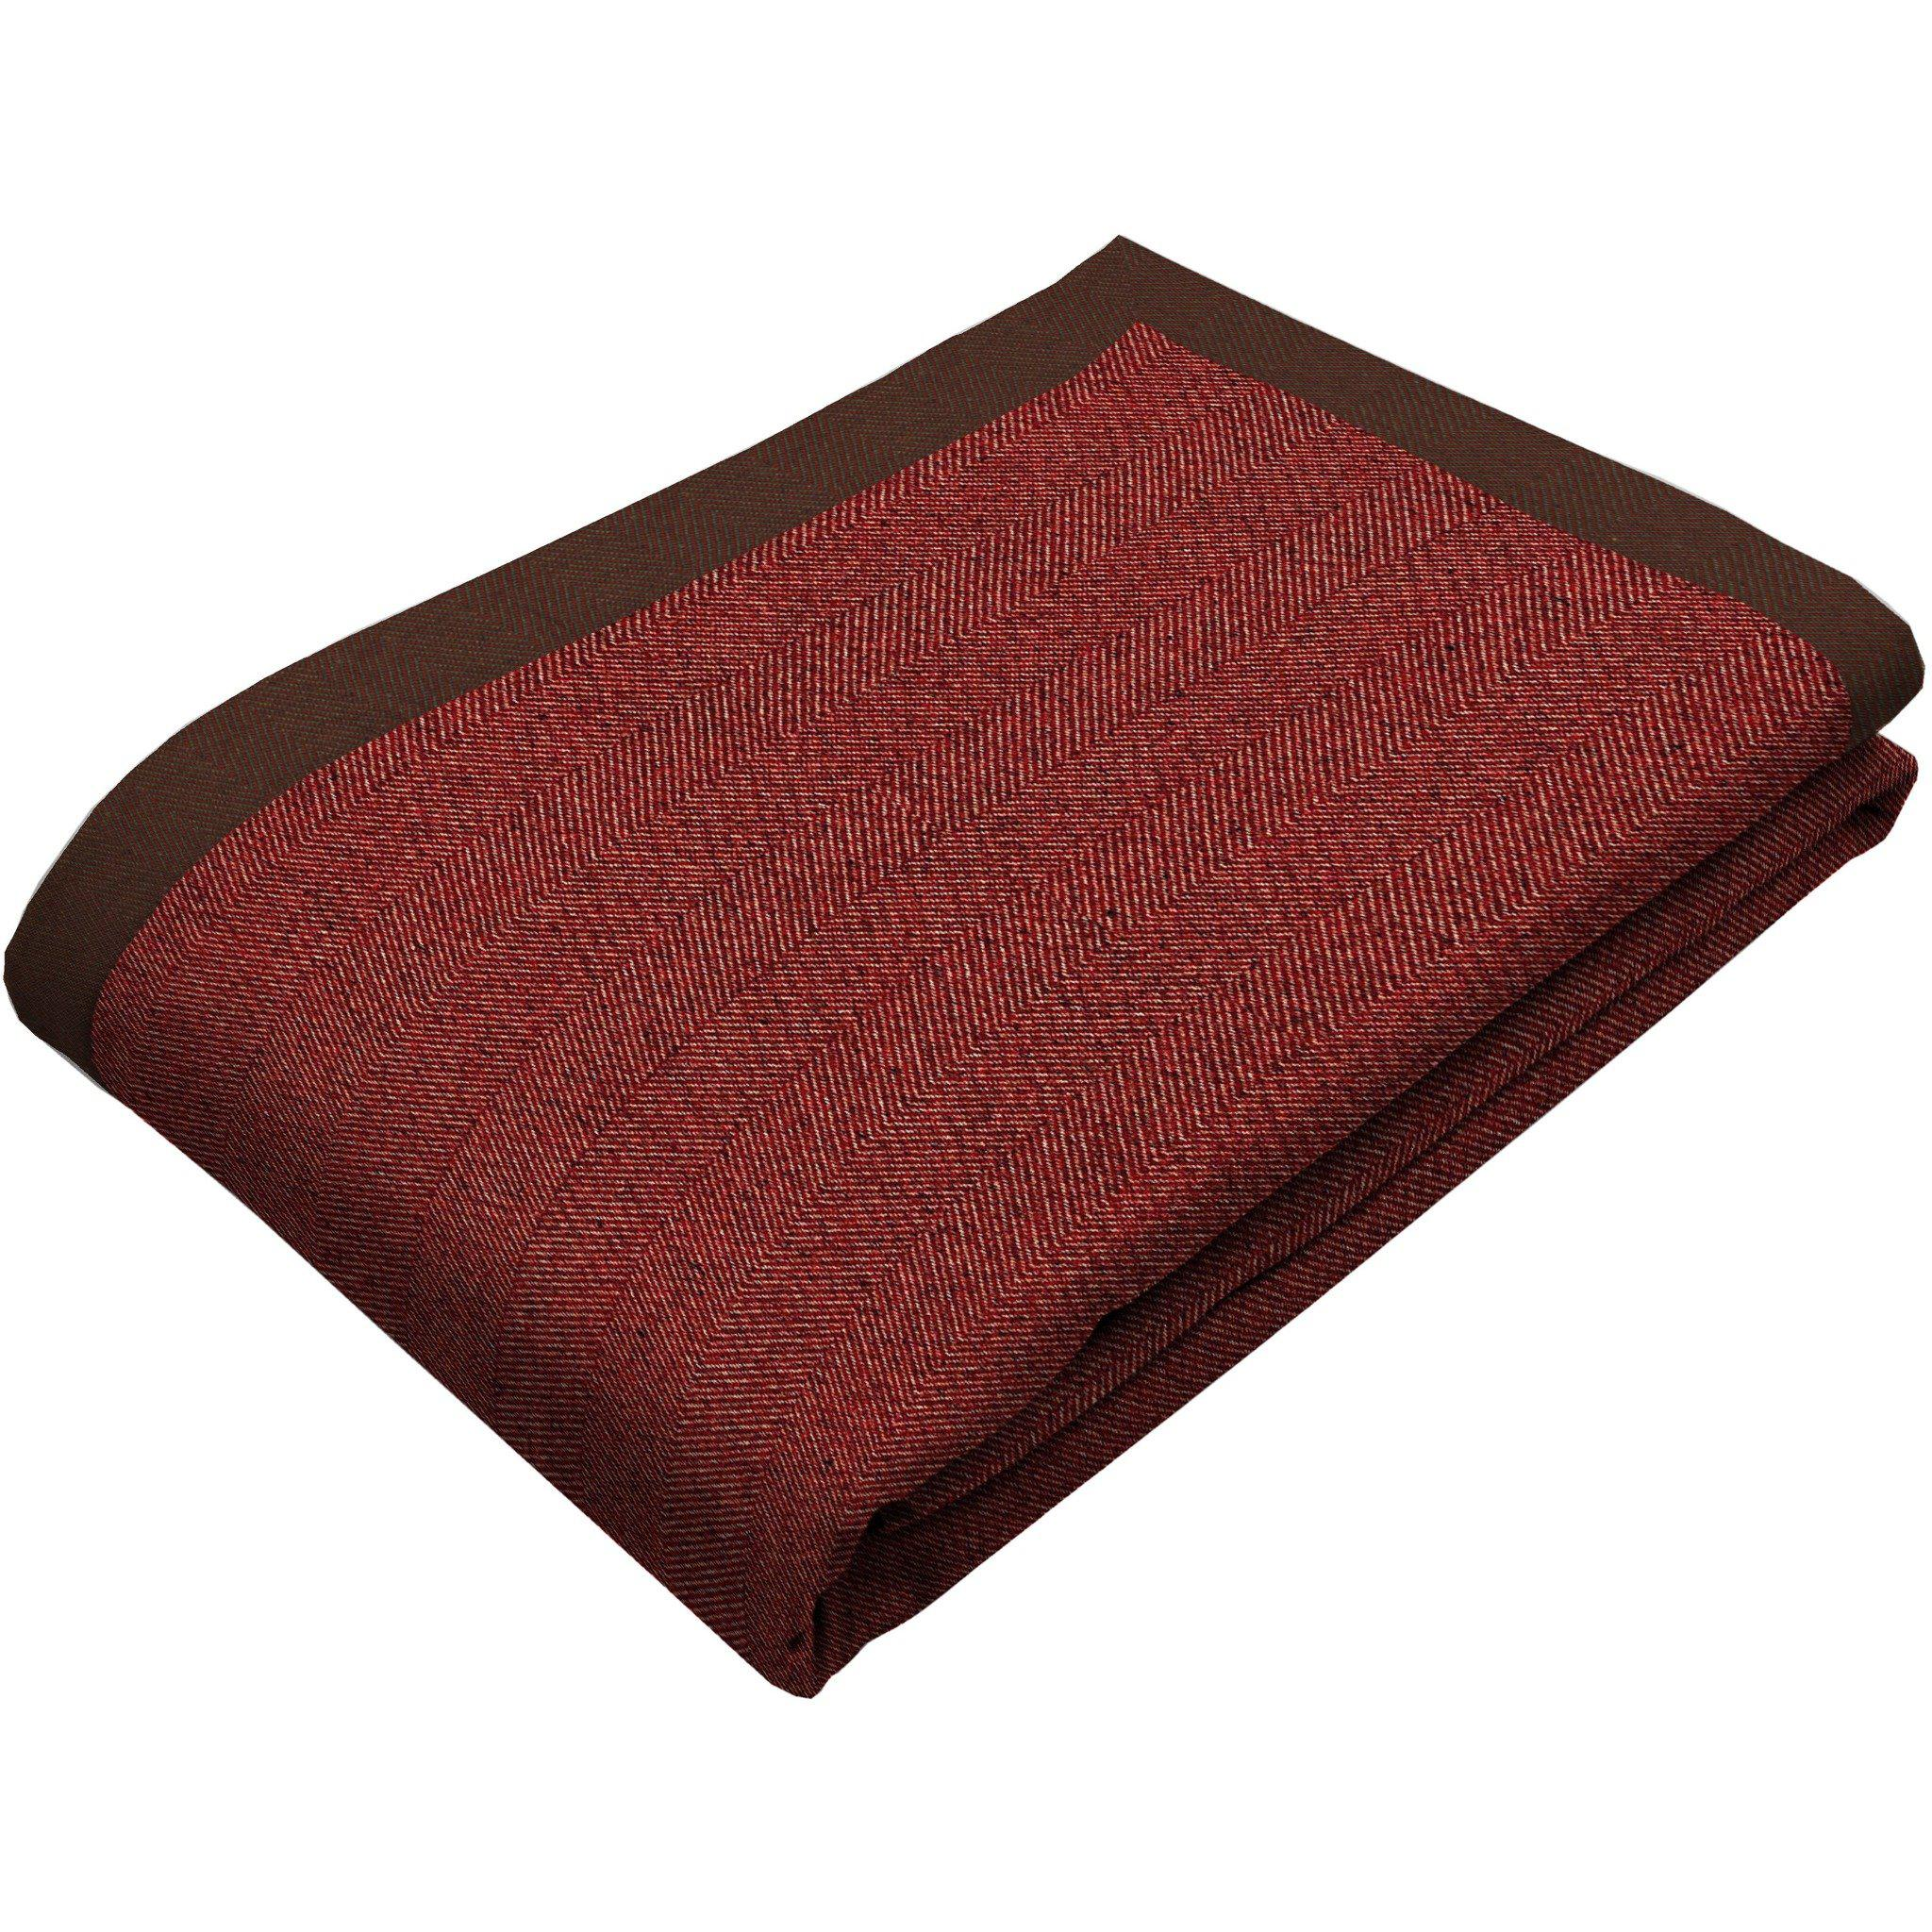 McAlister Textiles Herringbone Red Throws & Runners Throws and Runners Bed Runner (50cm x 240cm)